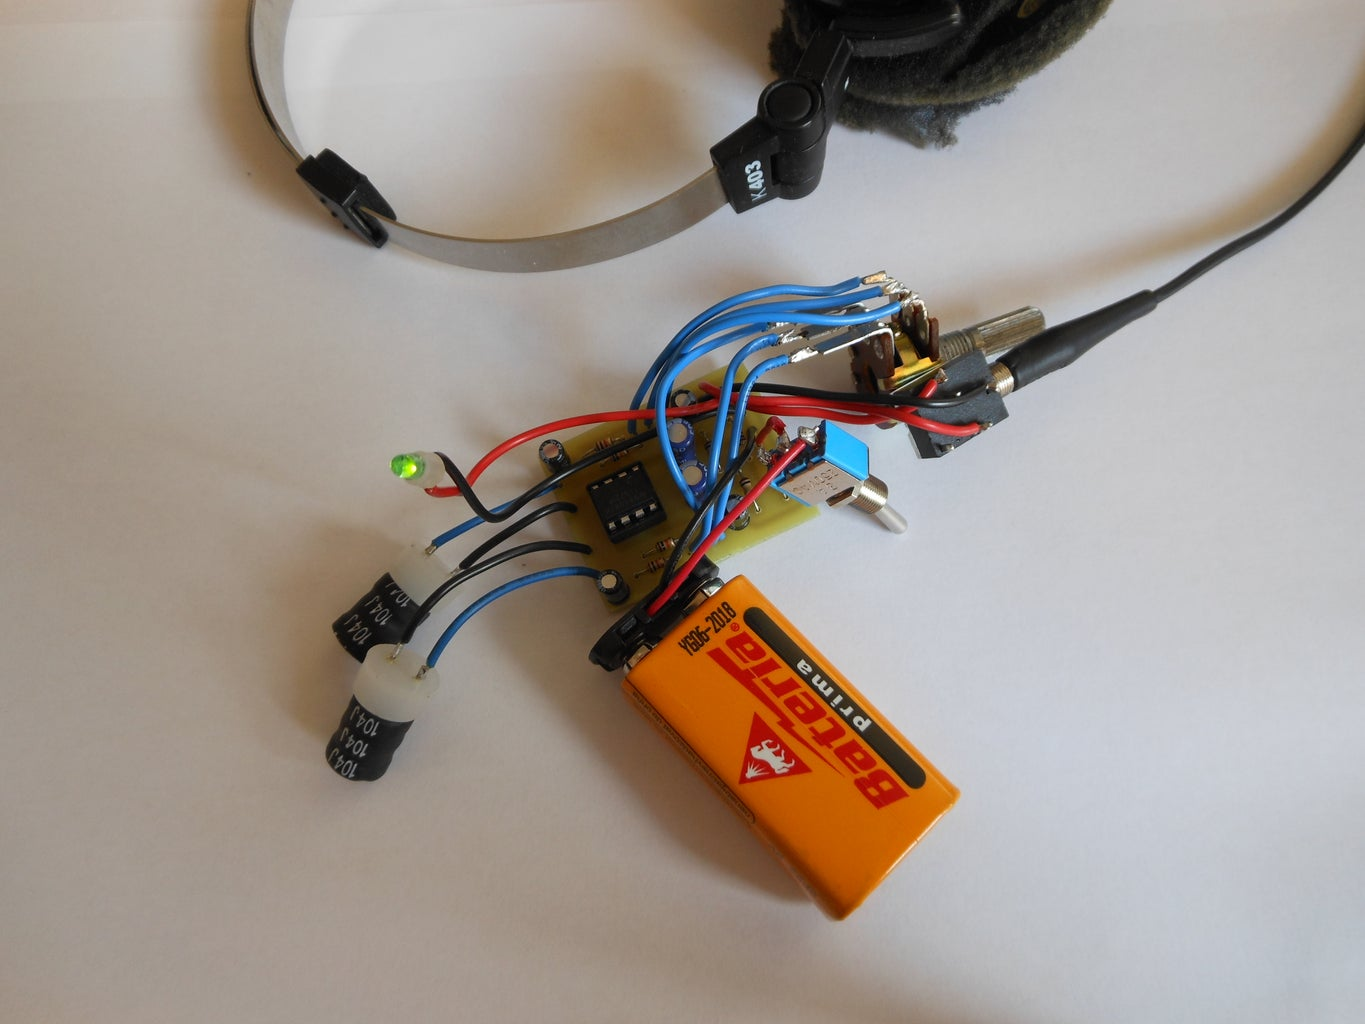 Soldering, Wiring and Testing the Circuit